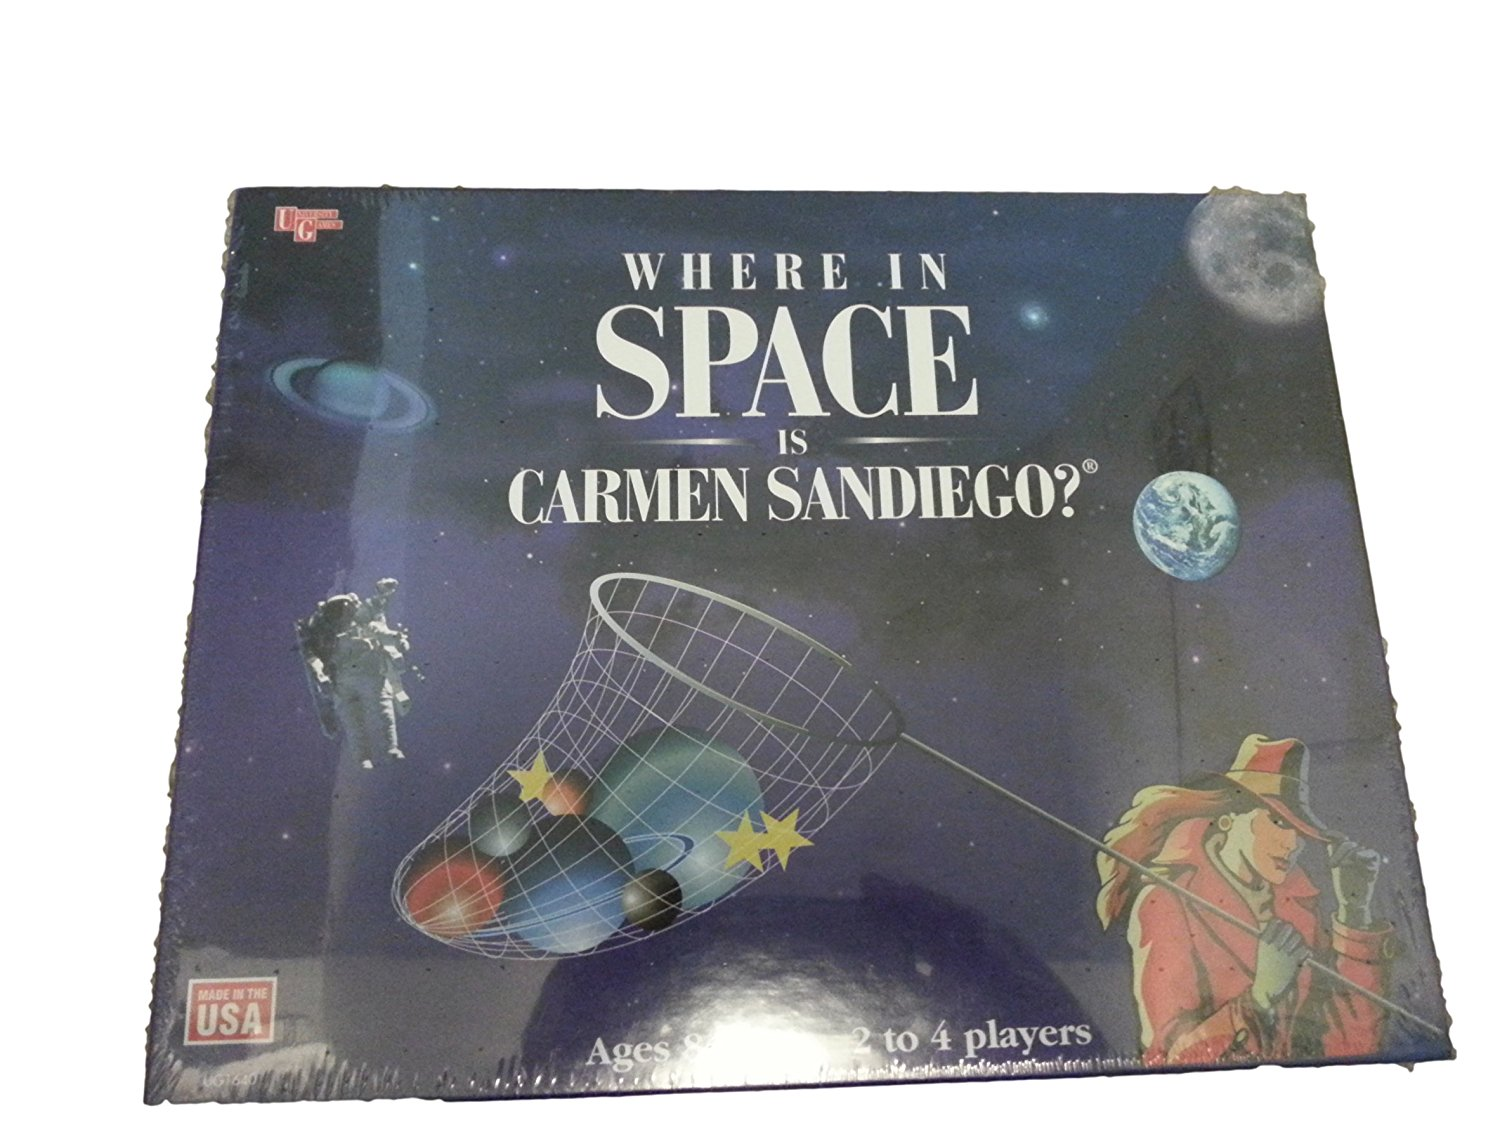 Where in Space Is Carmen Sandiego? Game, Explore space. By University Games by